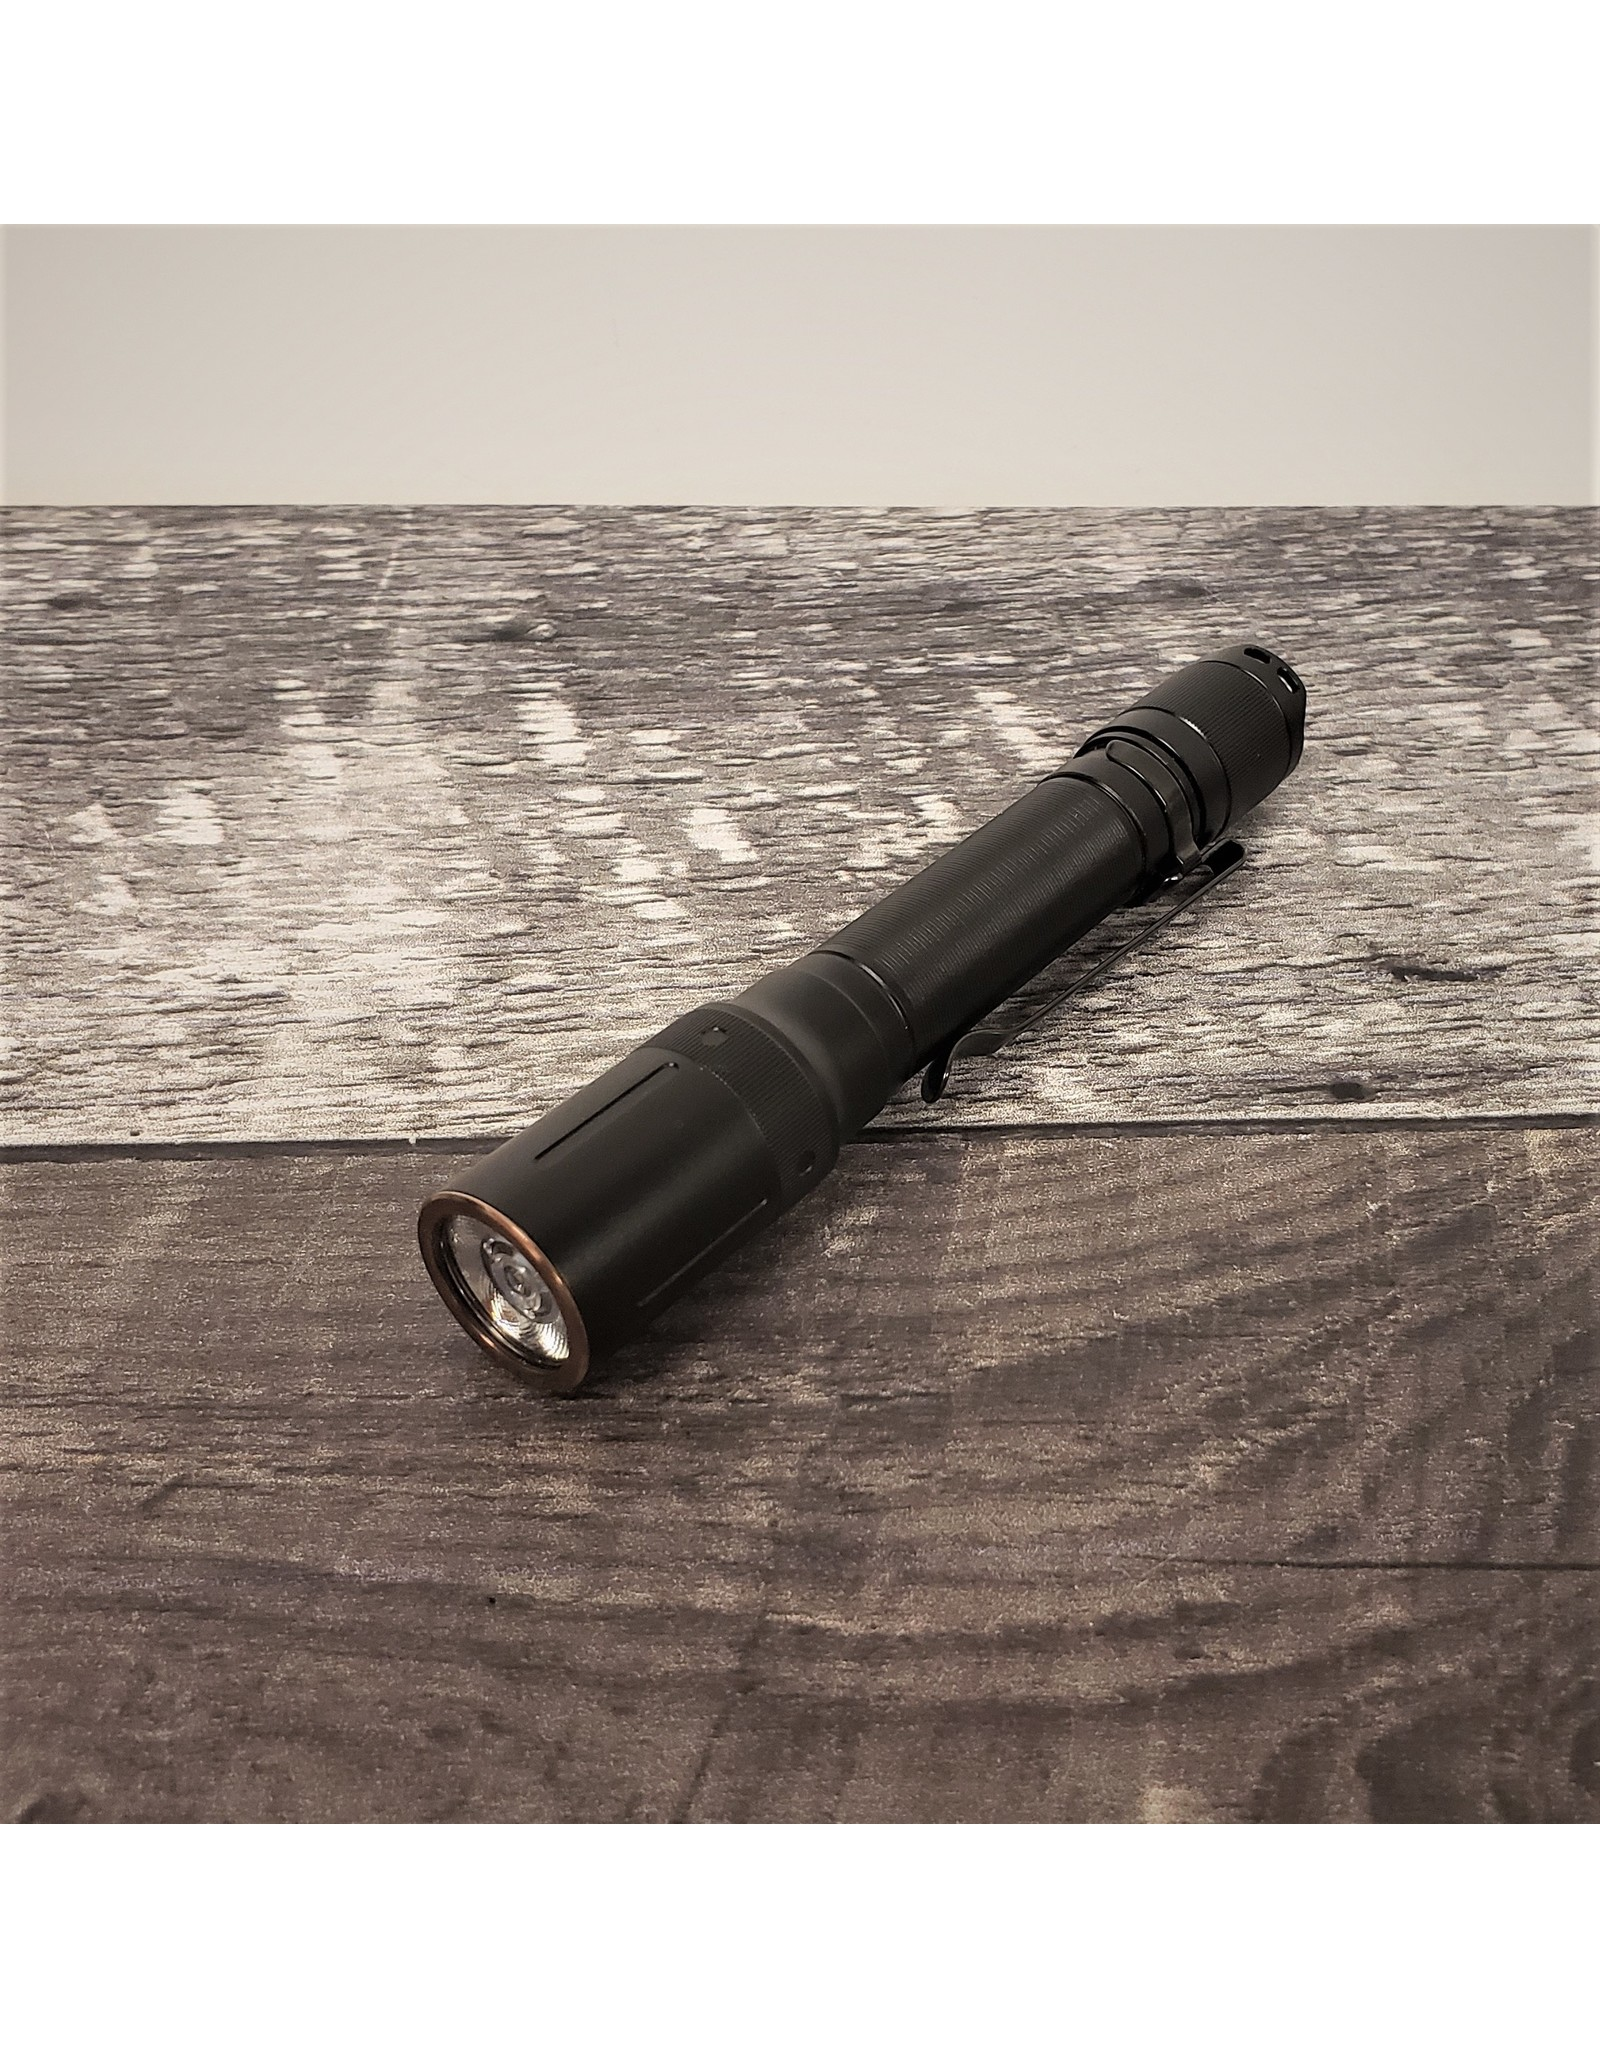 FENIX E20 V2.0 FLASHLIGHT